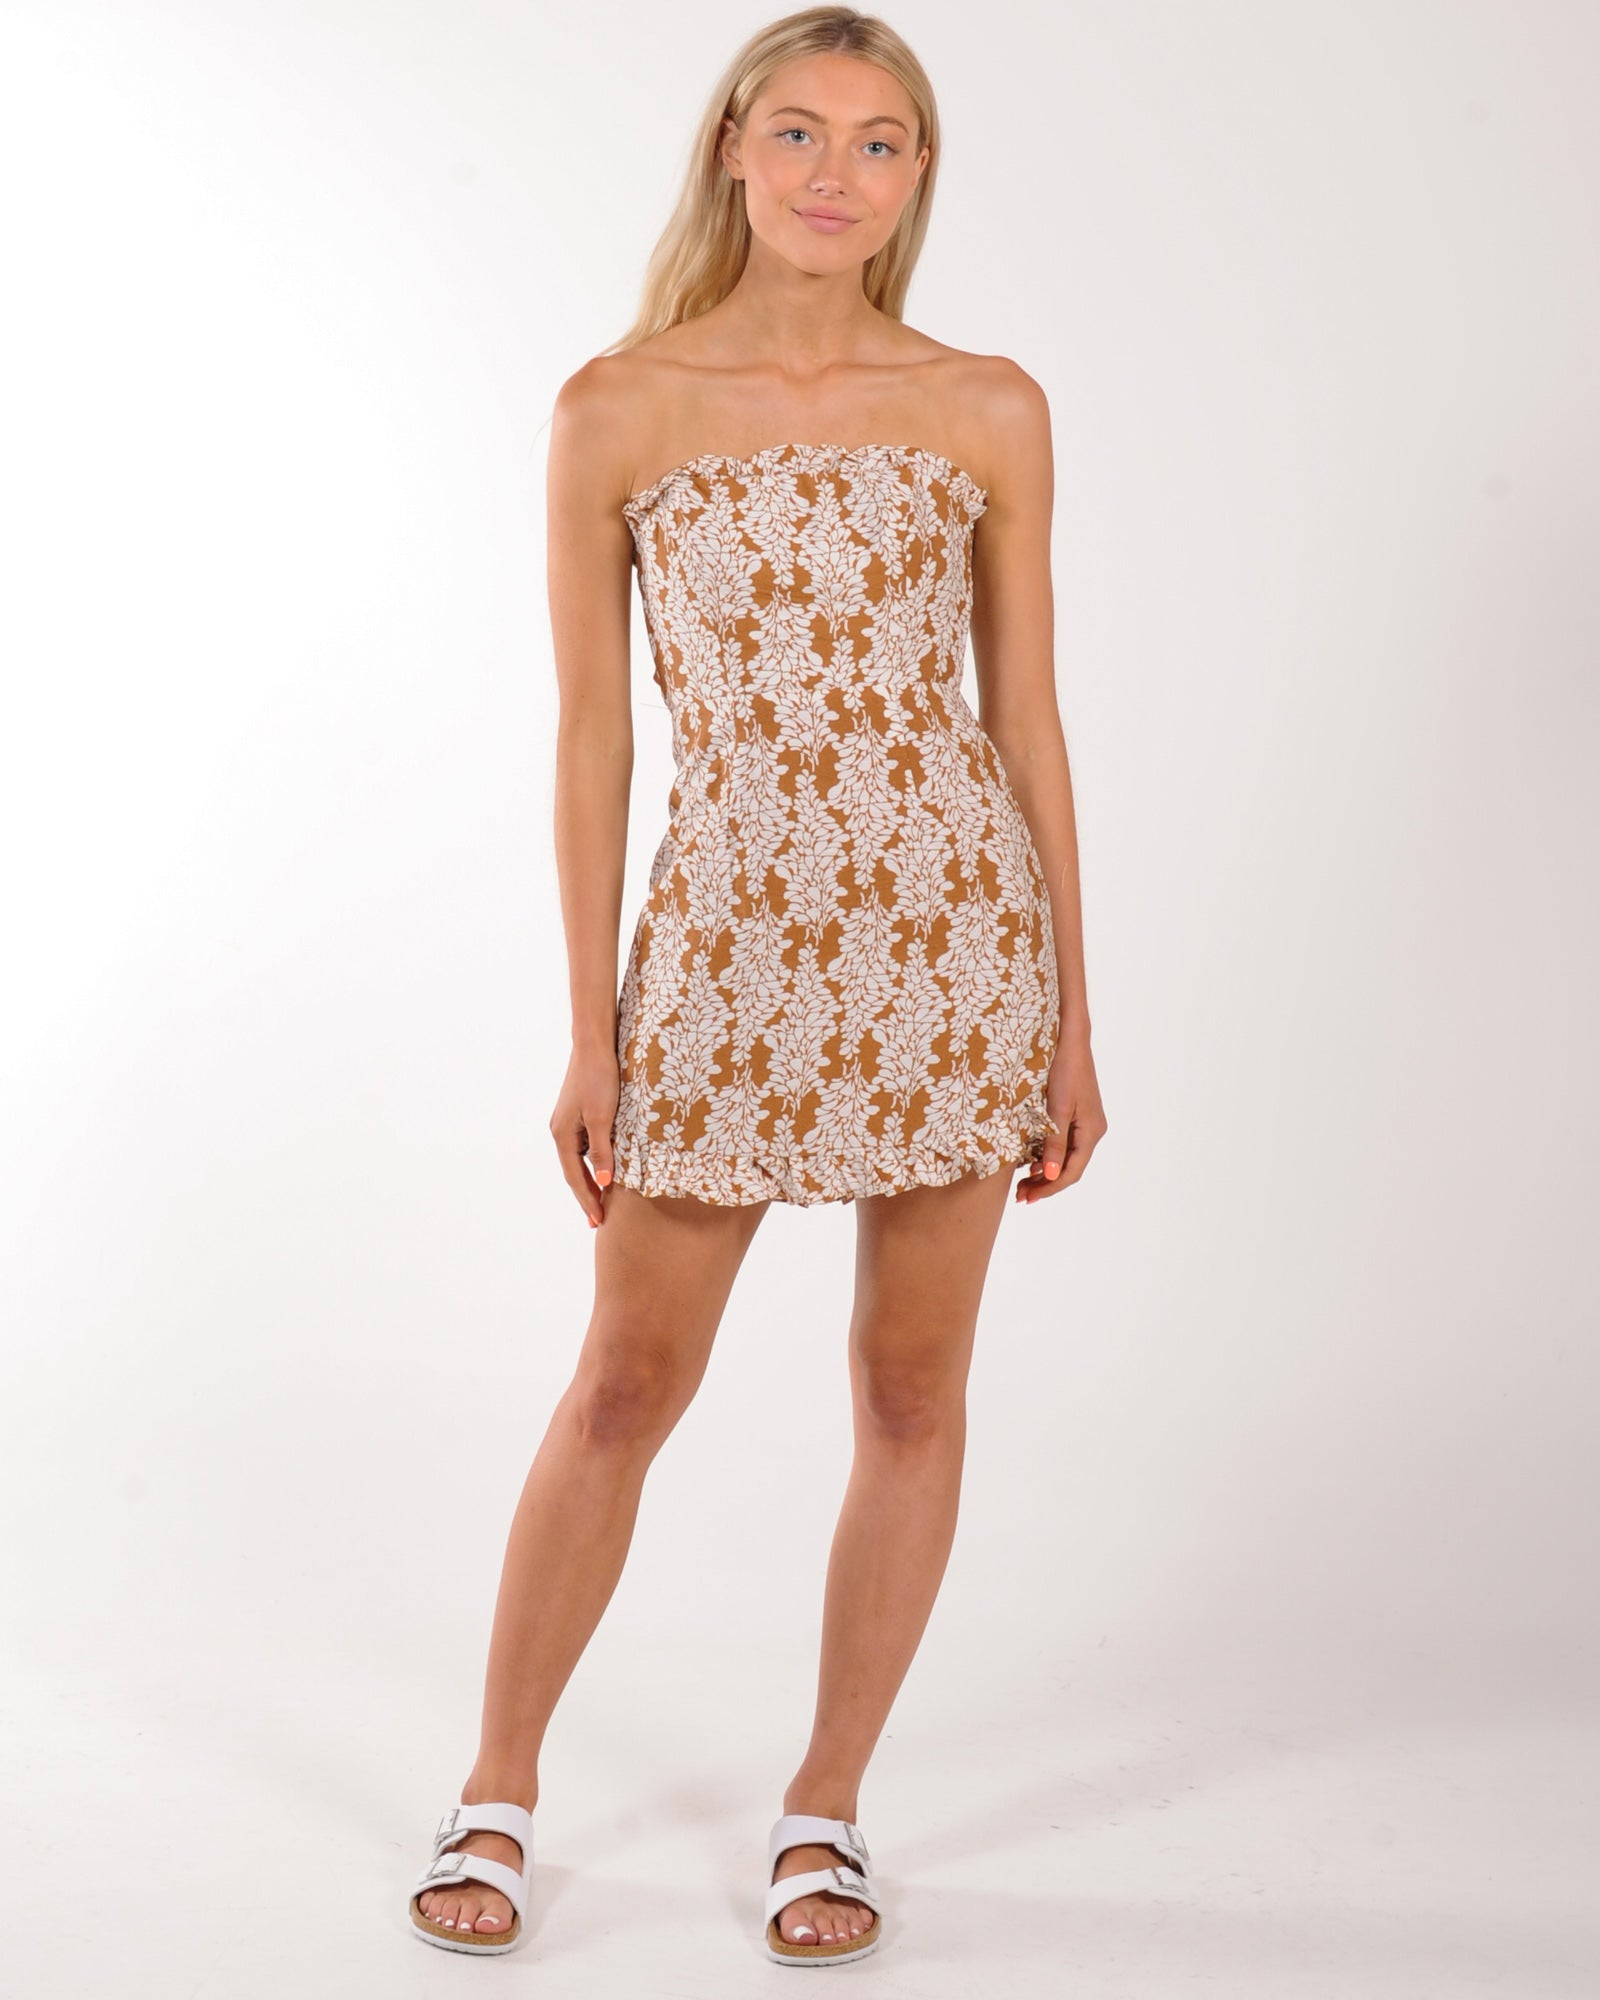 Soho Mini Dress - Tan